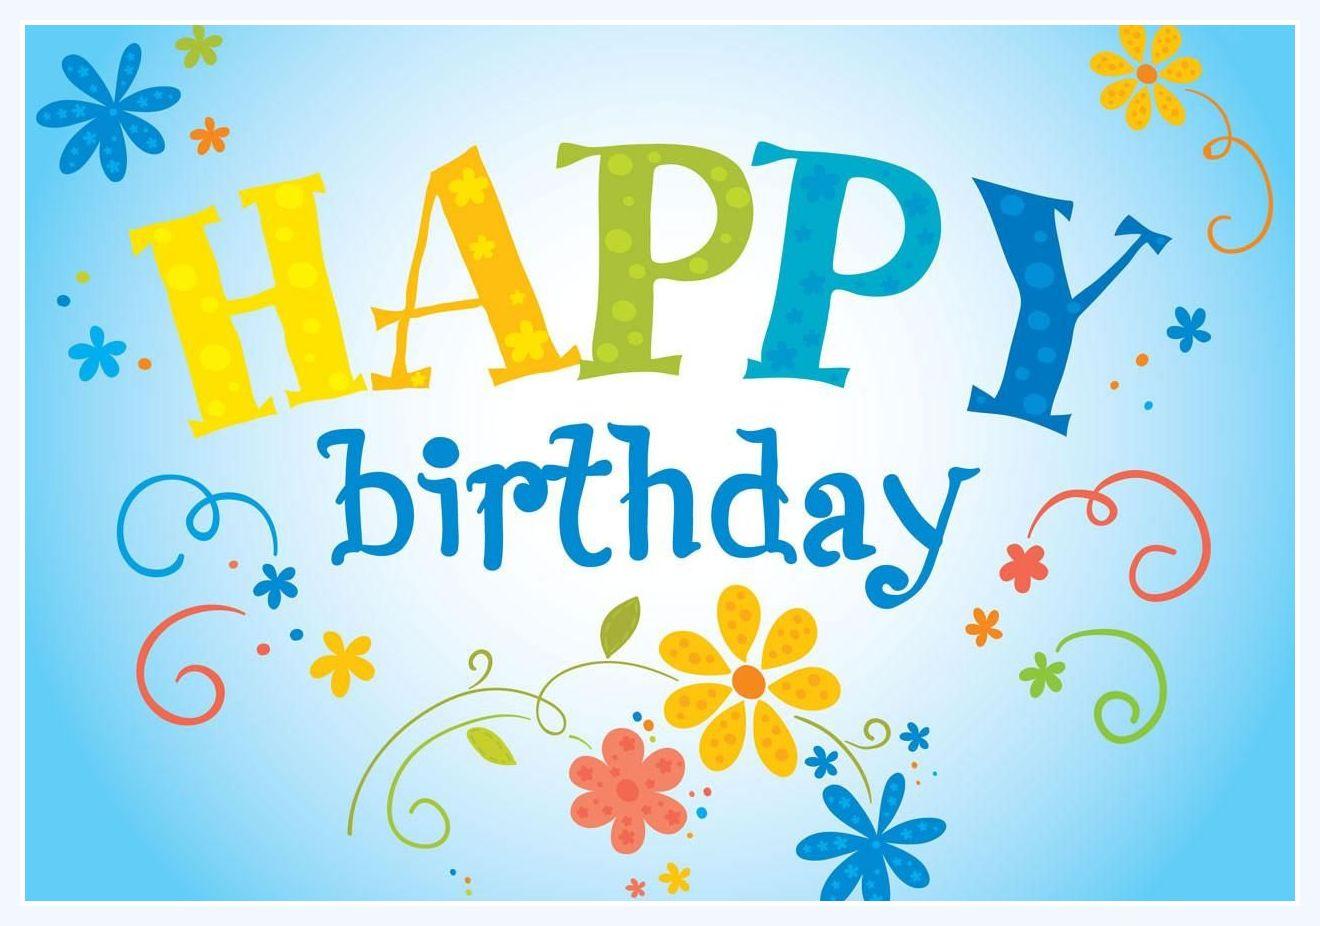 birthday boy wallpaper ; beautiful-happy-birthday-wallpaper-for-boys-it-s-my-birthday-of-happy-birthday-images-for-boy